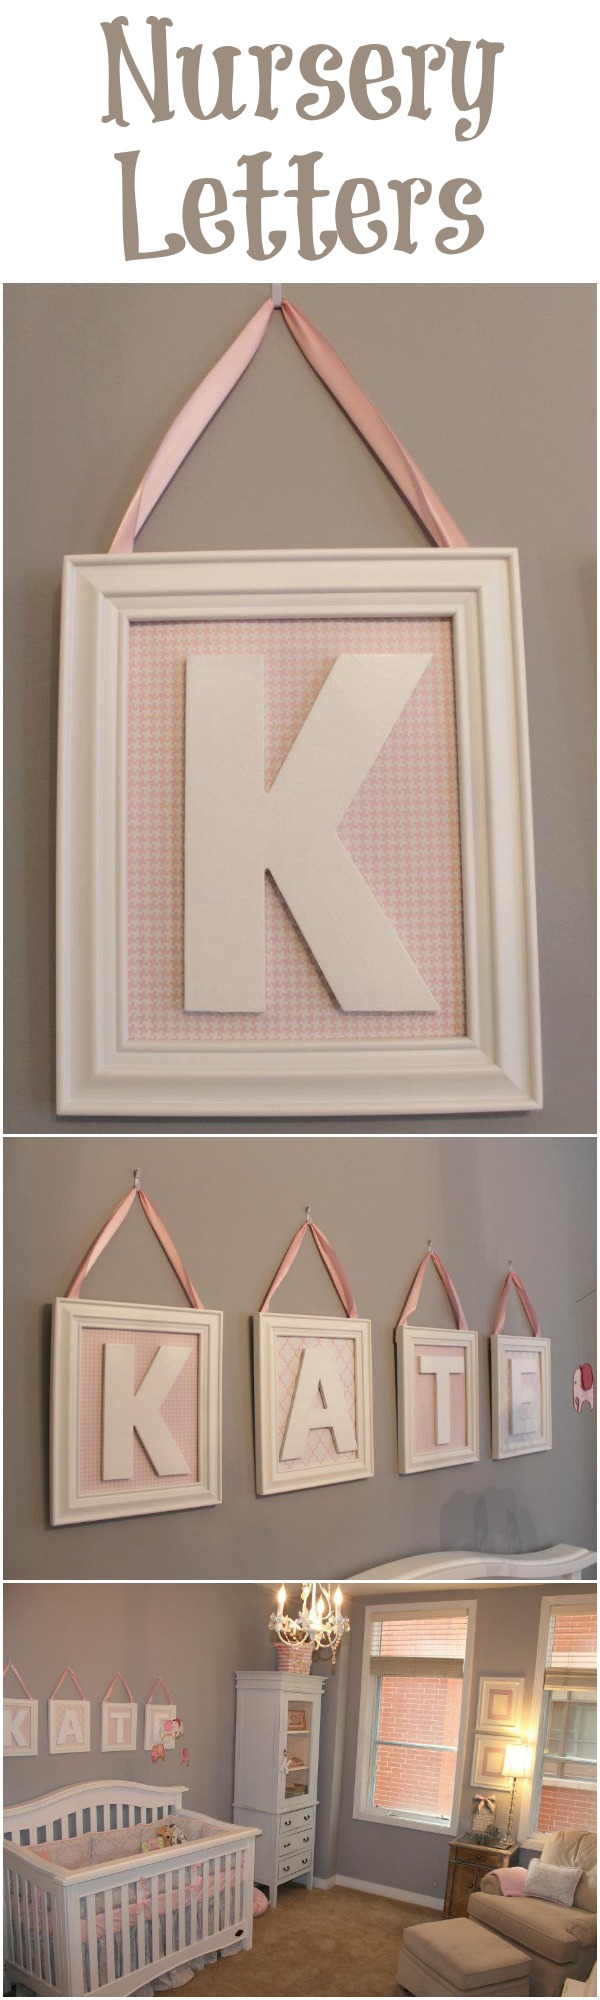 Make Your Own Nursery Letters Easy Diy Project